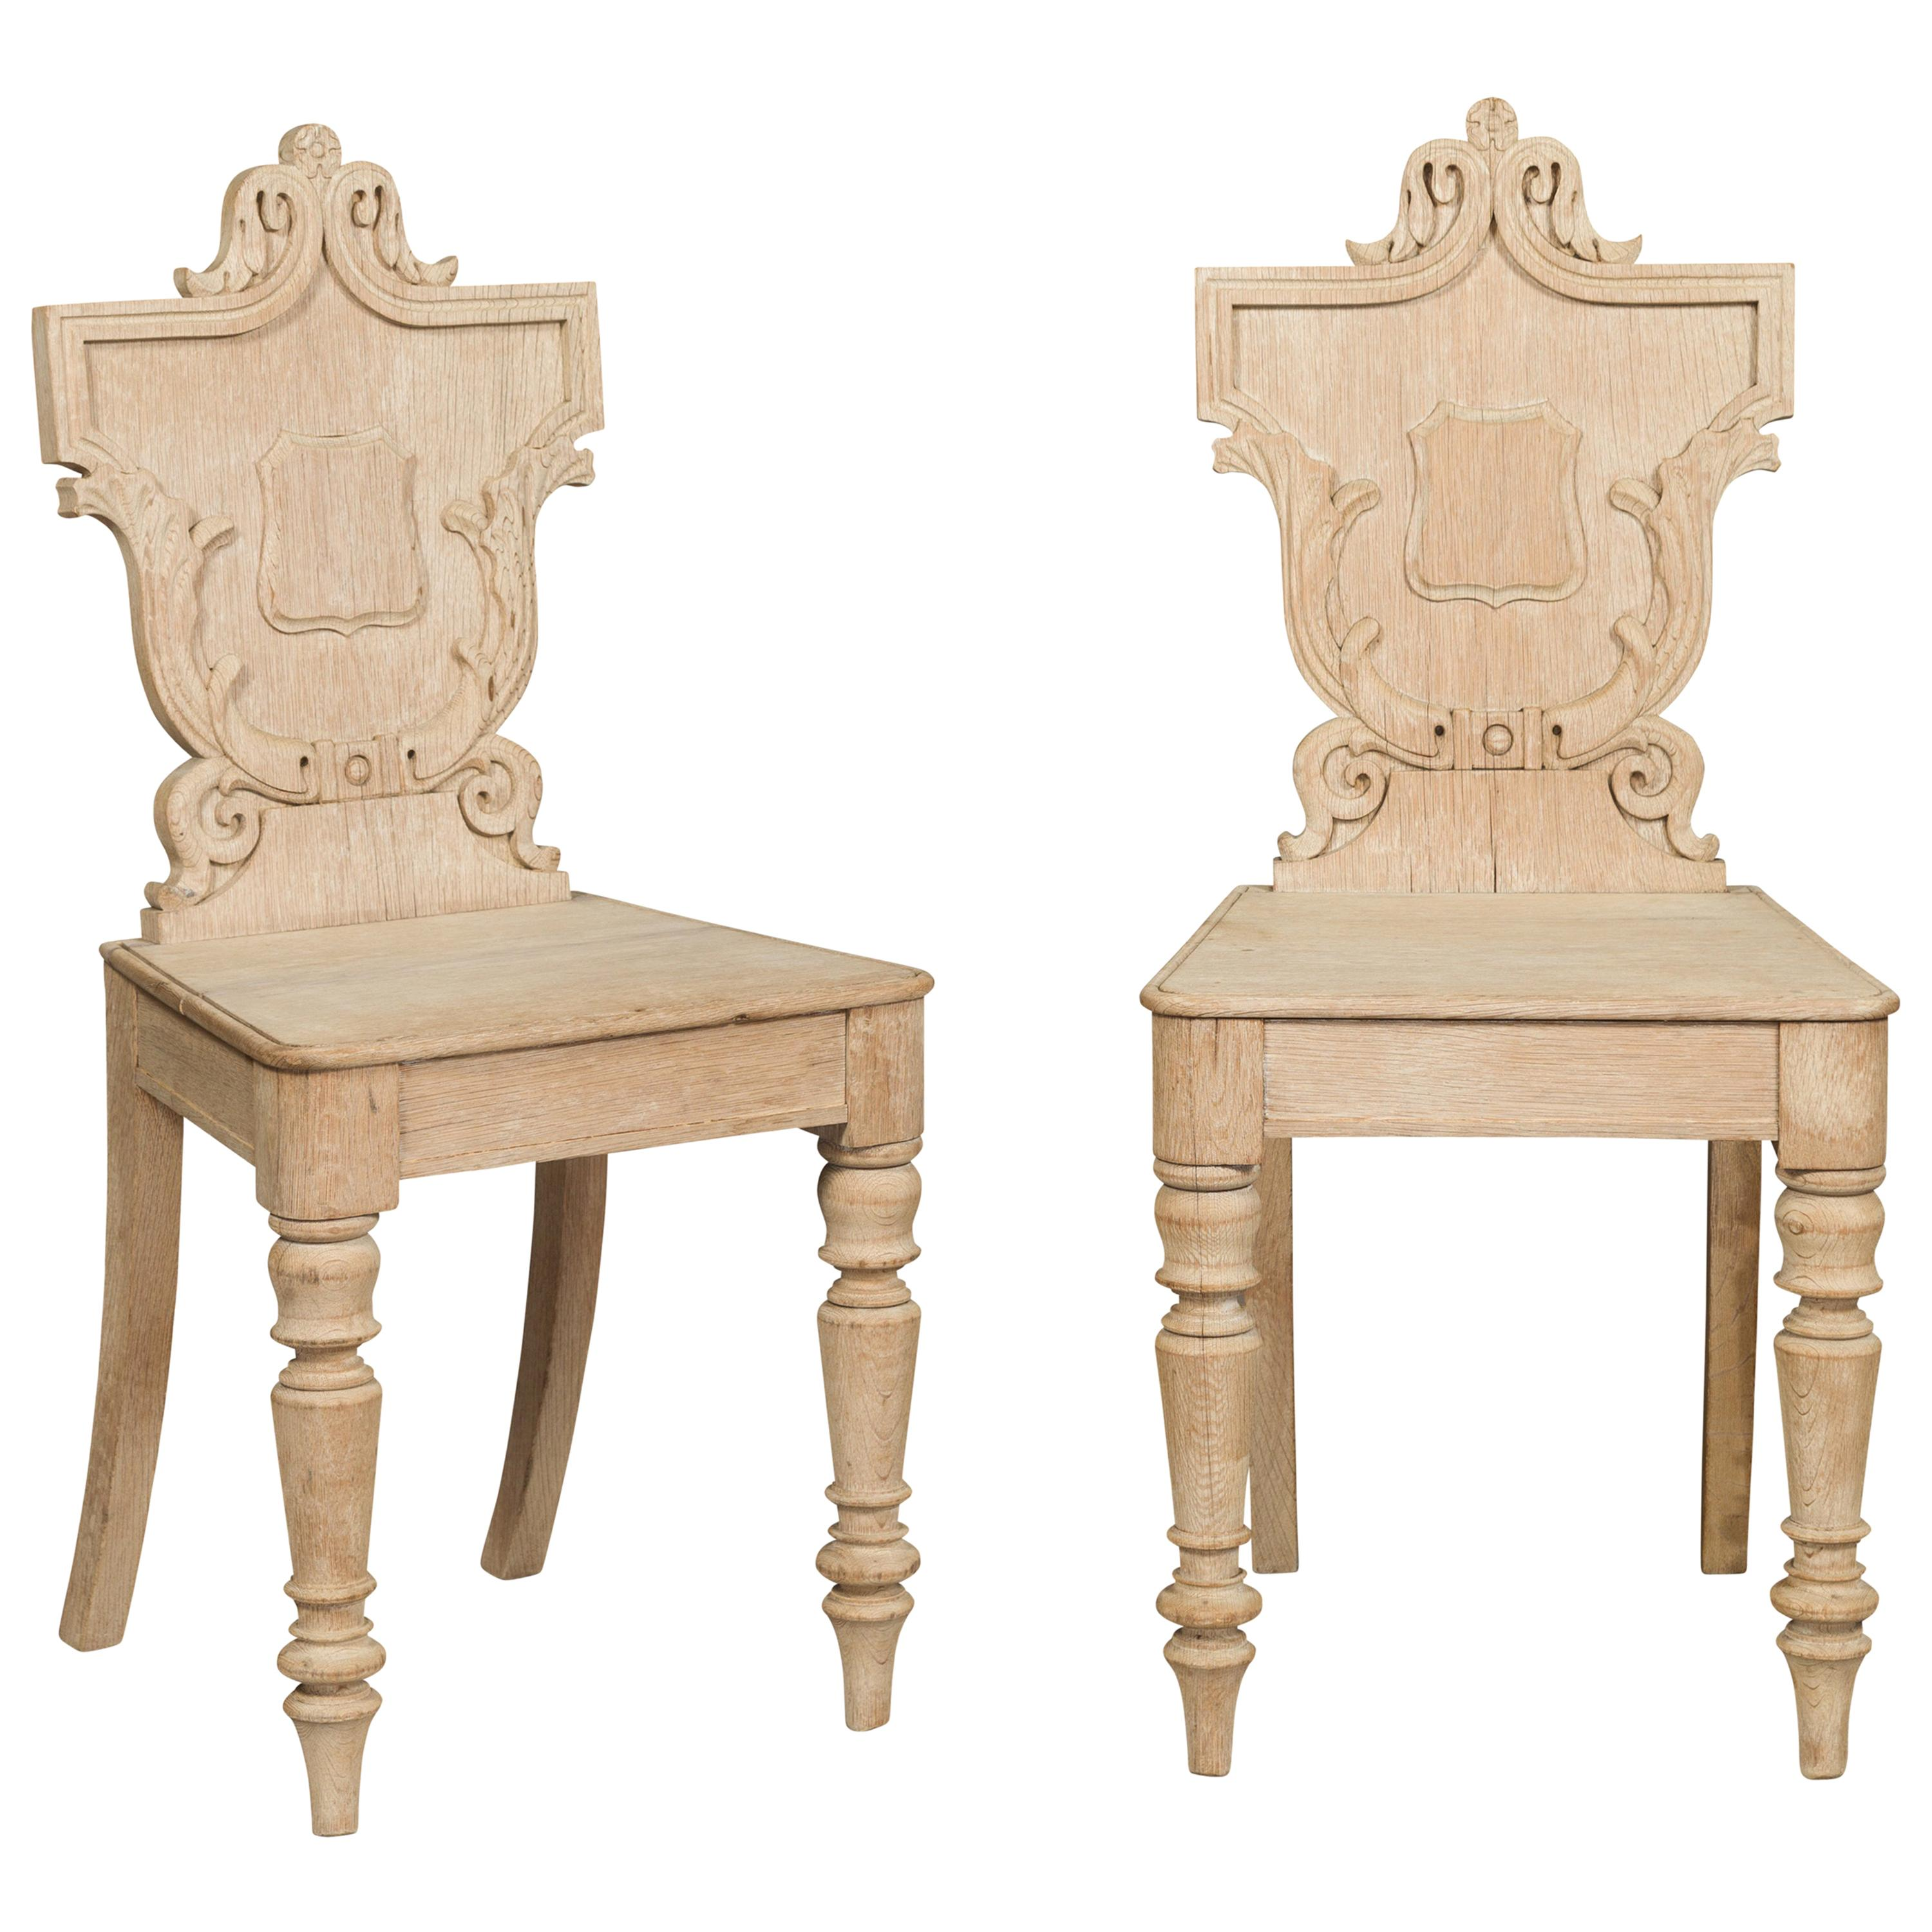 Pair of English 1880s Bleached Oak Hall Chairs with Shield-Shaped Carved Backs